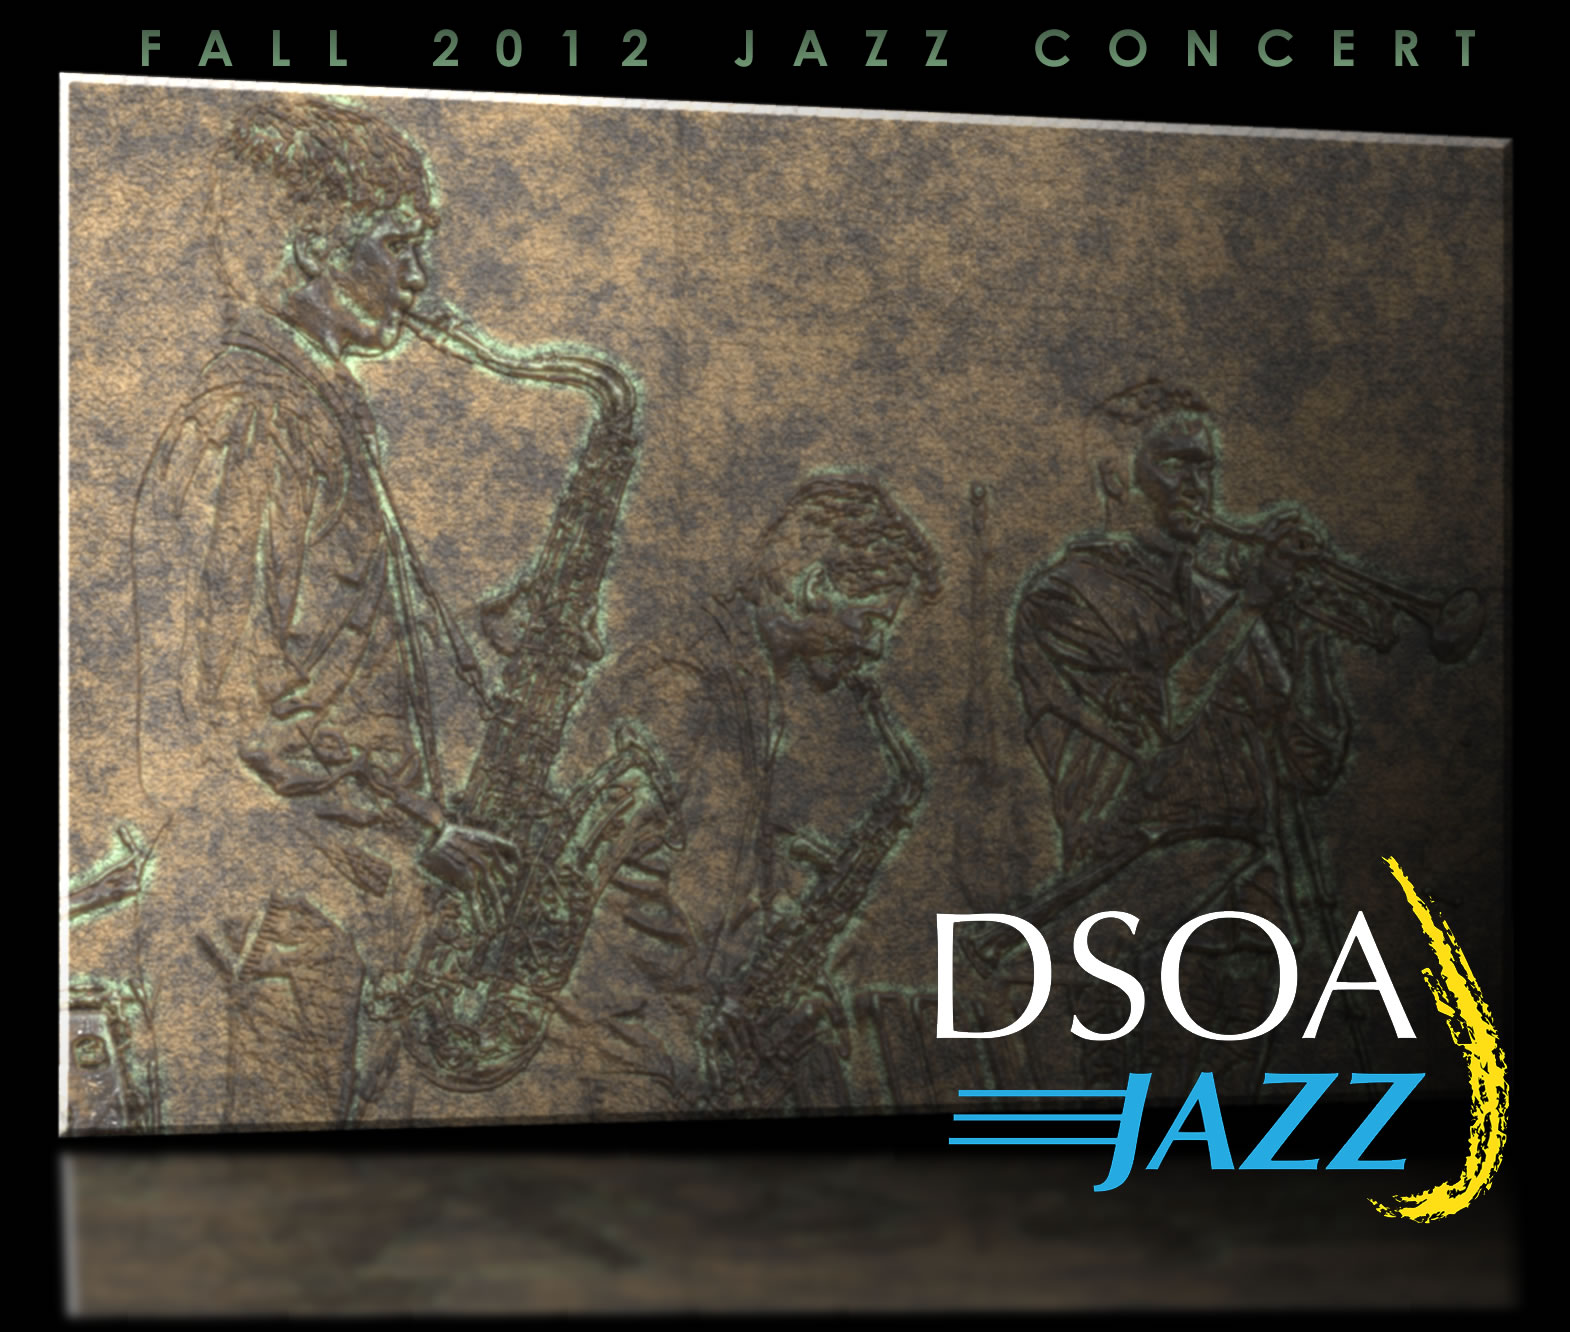 Dsoa jazz fall 2012 concert at the brandt black box theater